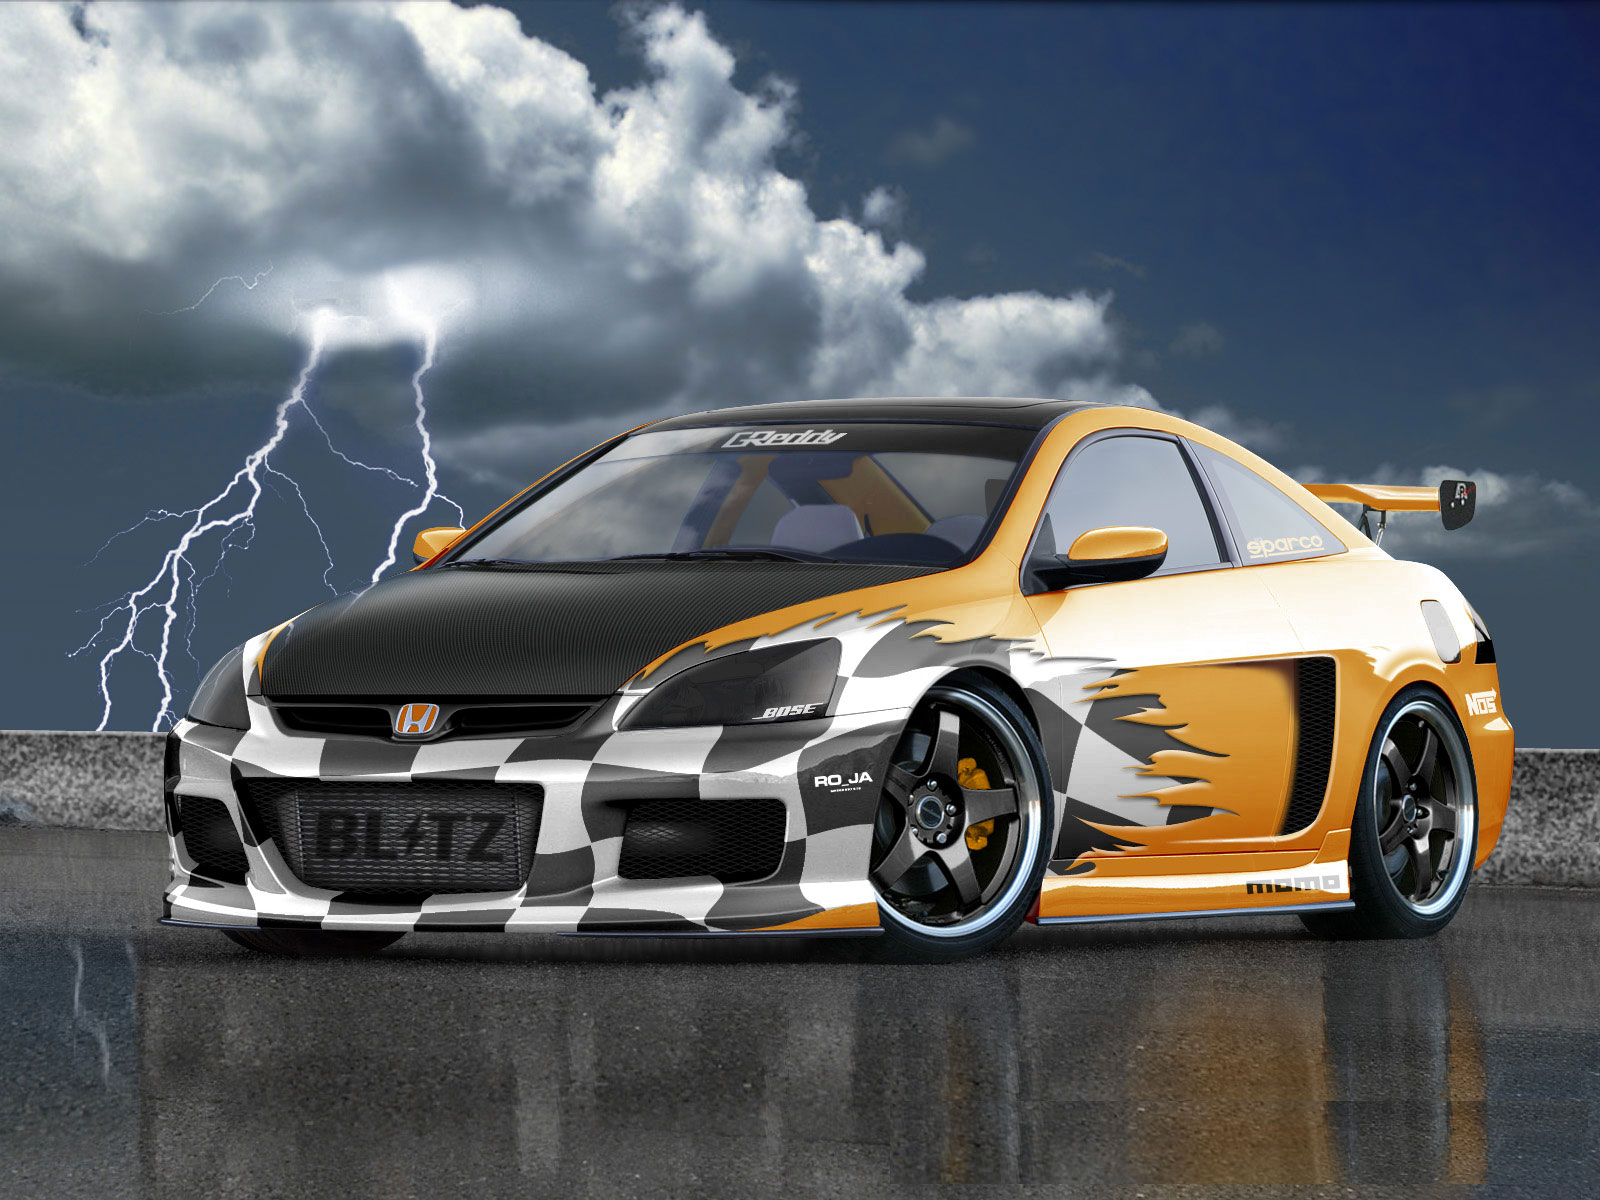 cool fast cars wallpapers Cars Wallpapers 1600x1200